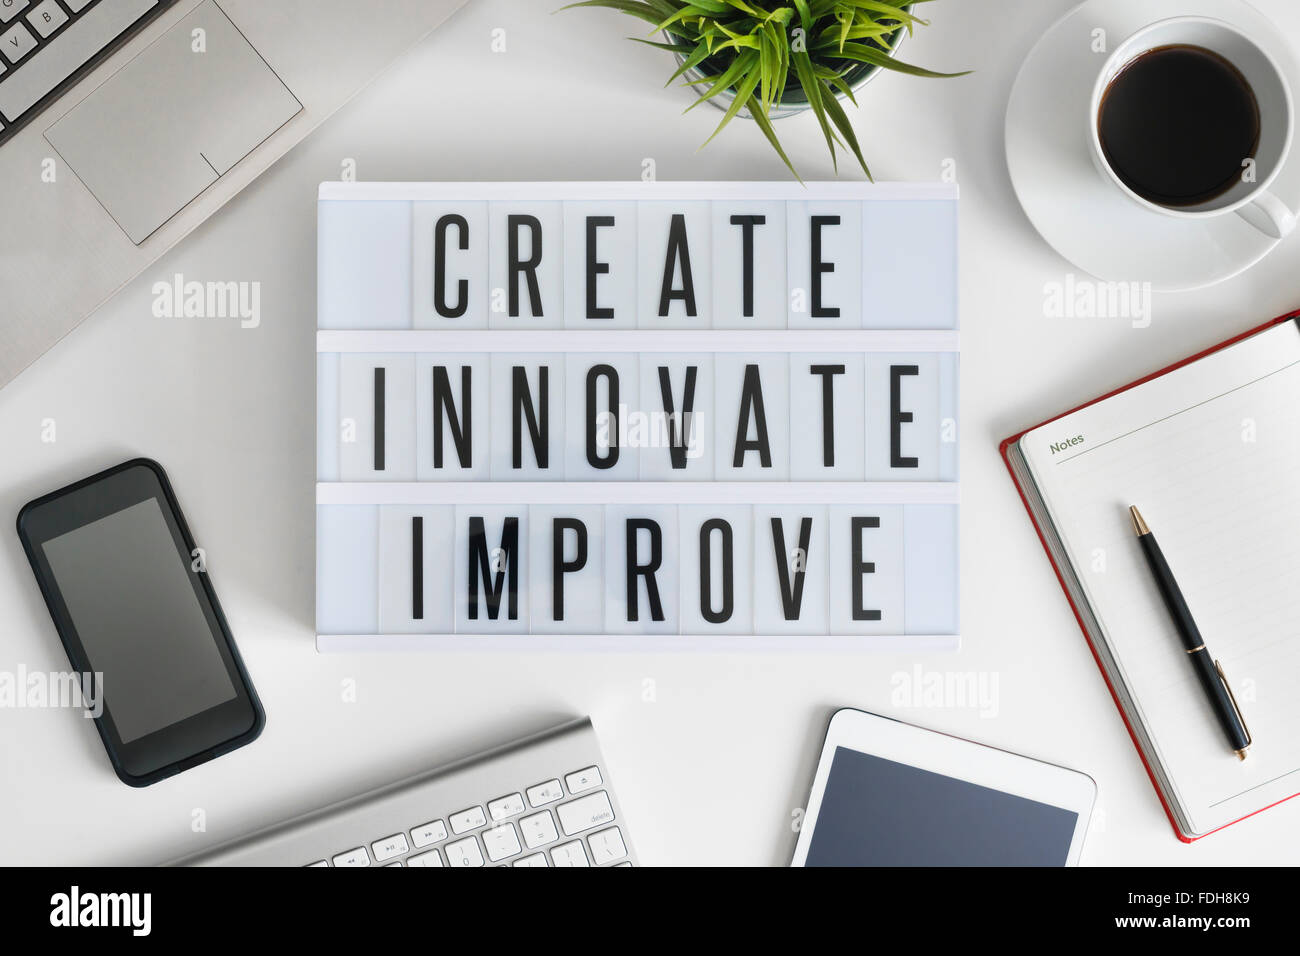 Create, innovate and improve - Stock Image